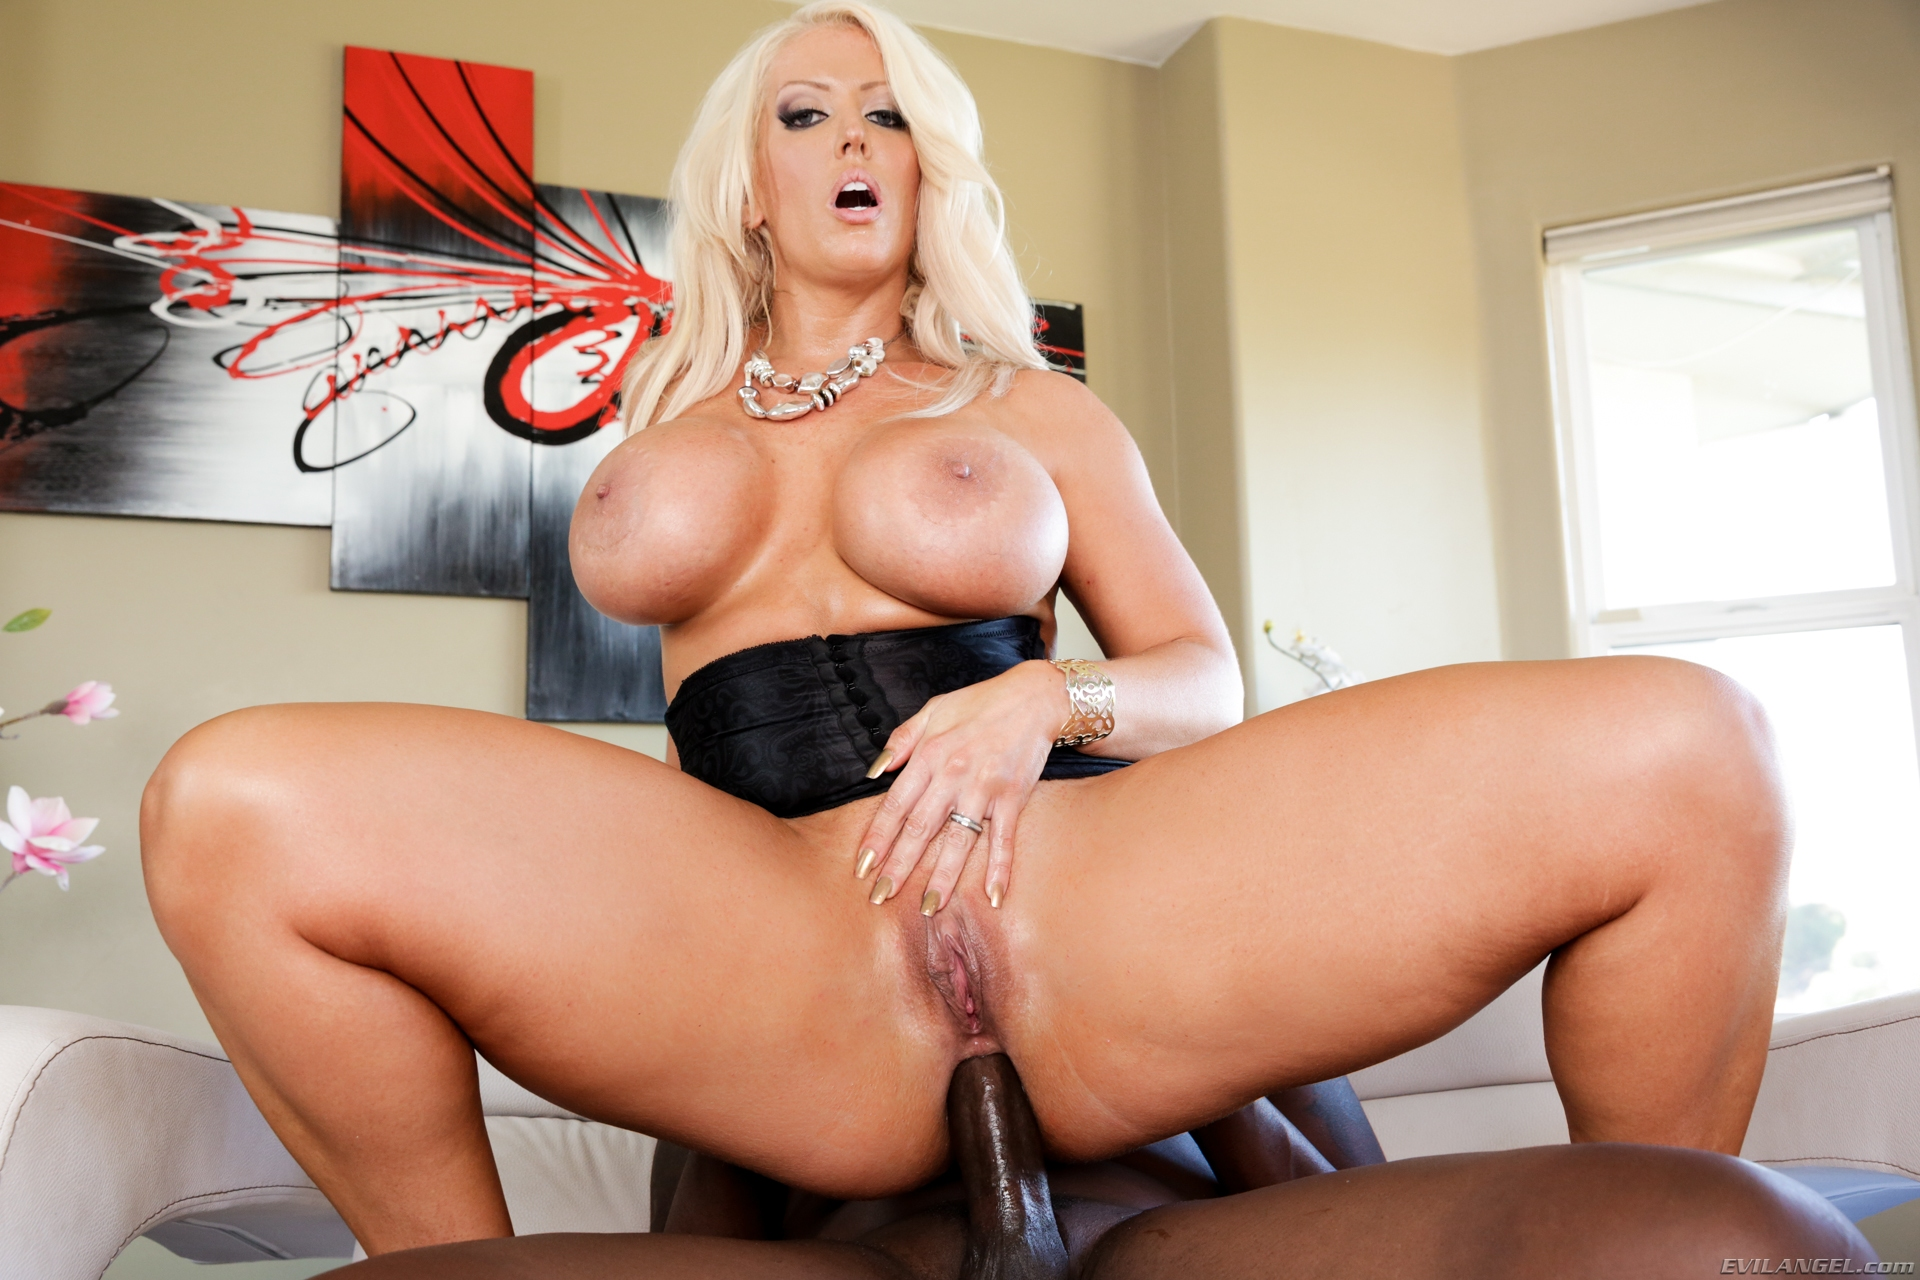 Nikki benz reamed in the ass hard and cummed on 2